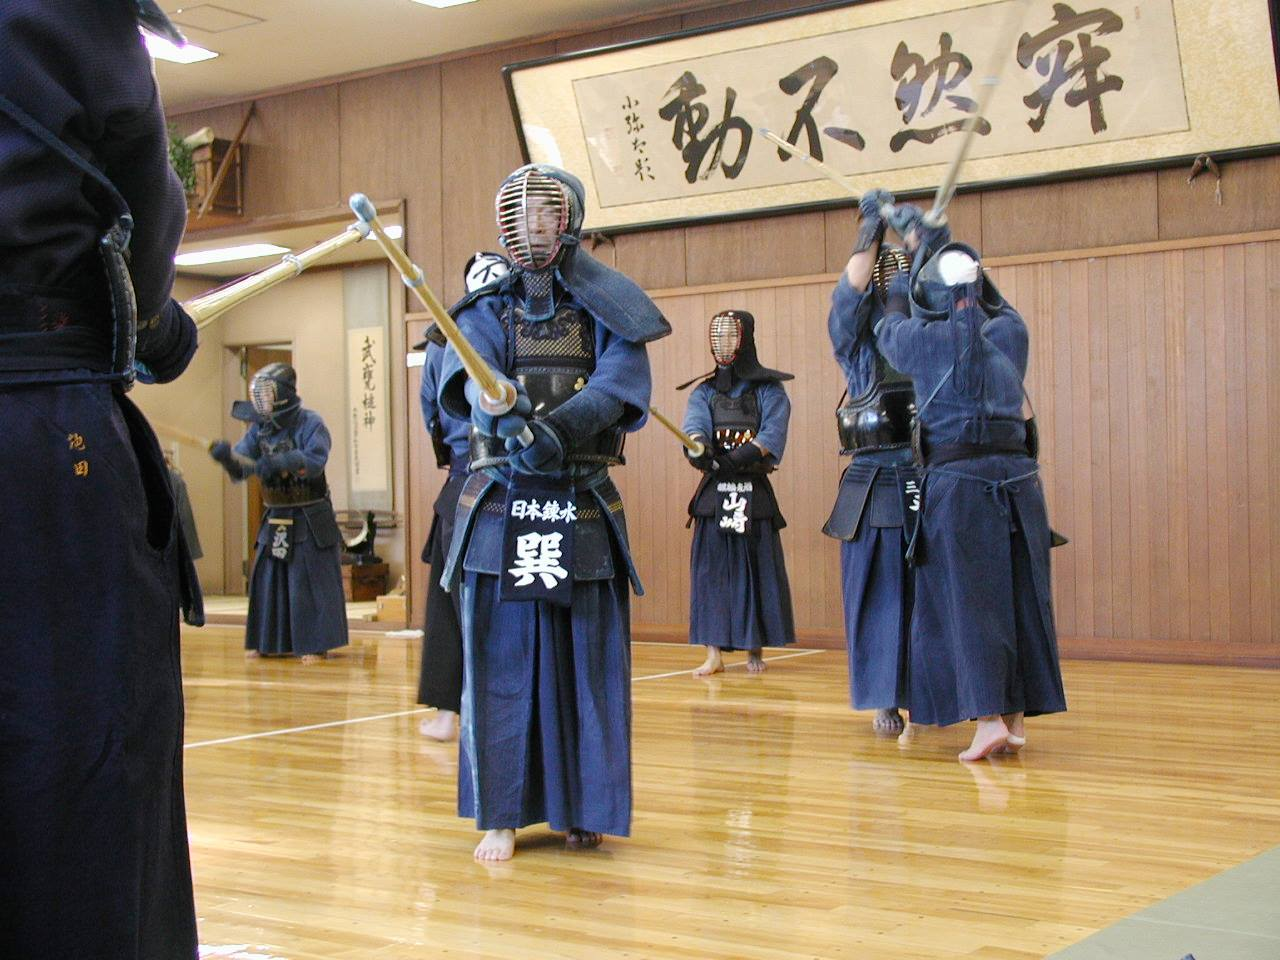 Kendo - Japanese style fencing - photo by Becky Yee